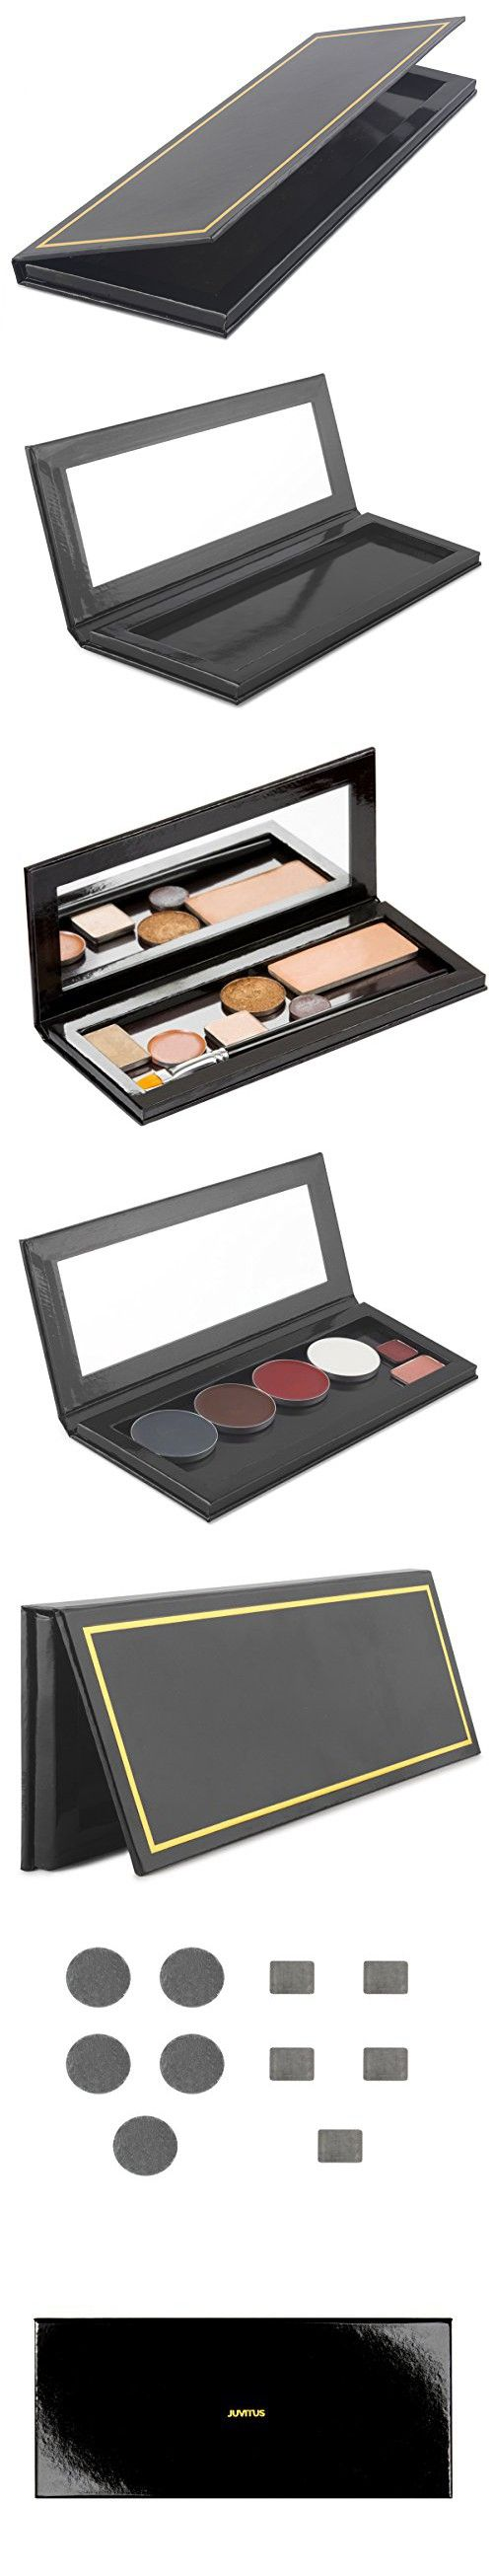 Empty Customizable Makeup Palette with Mirror and